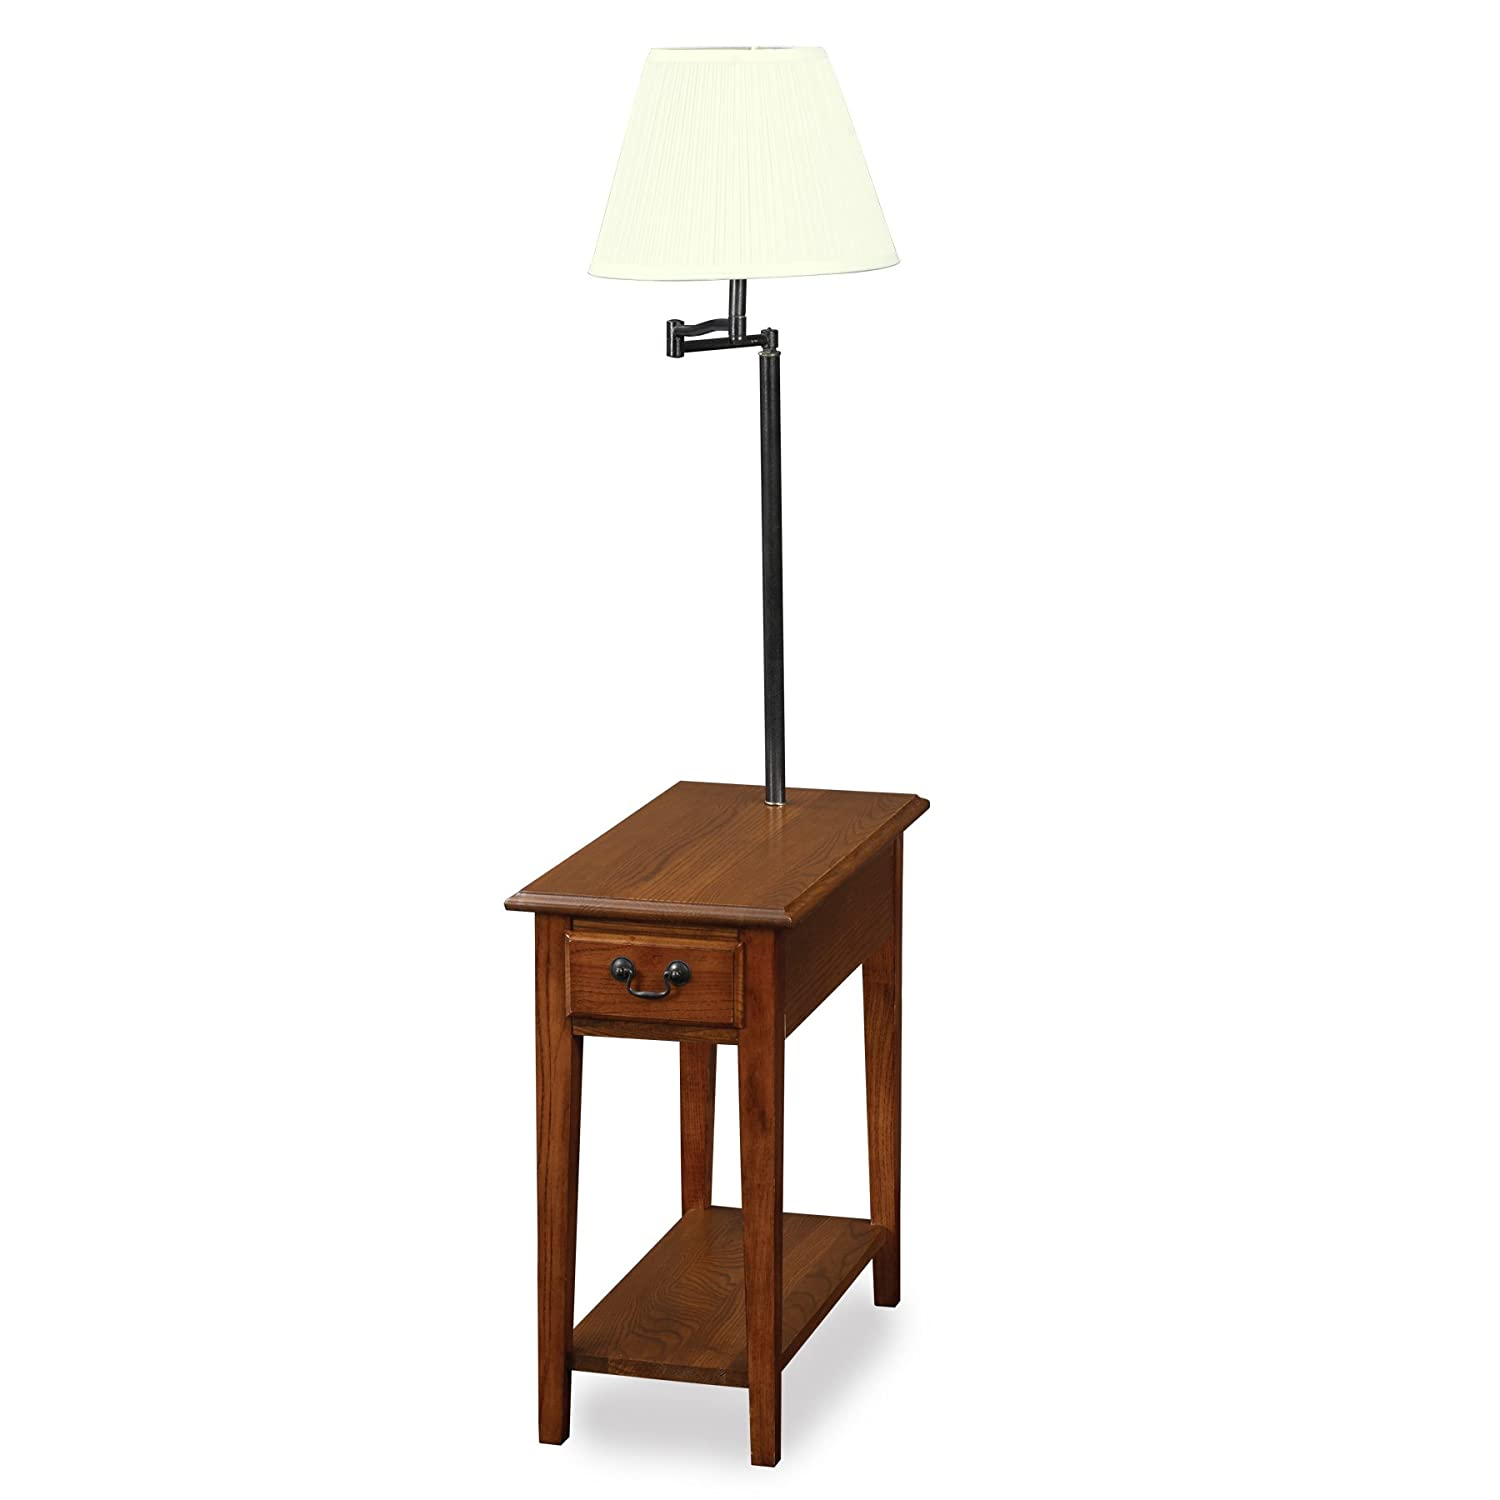 ab berman task bond table next ra lamp wide michael products abbey robert